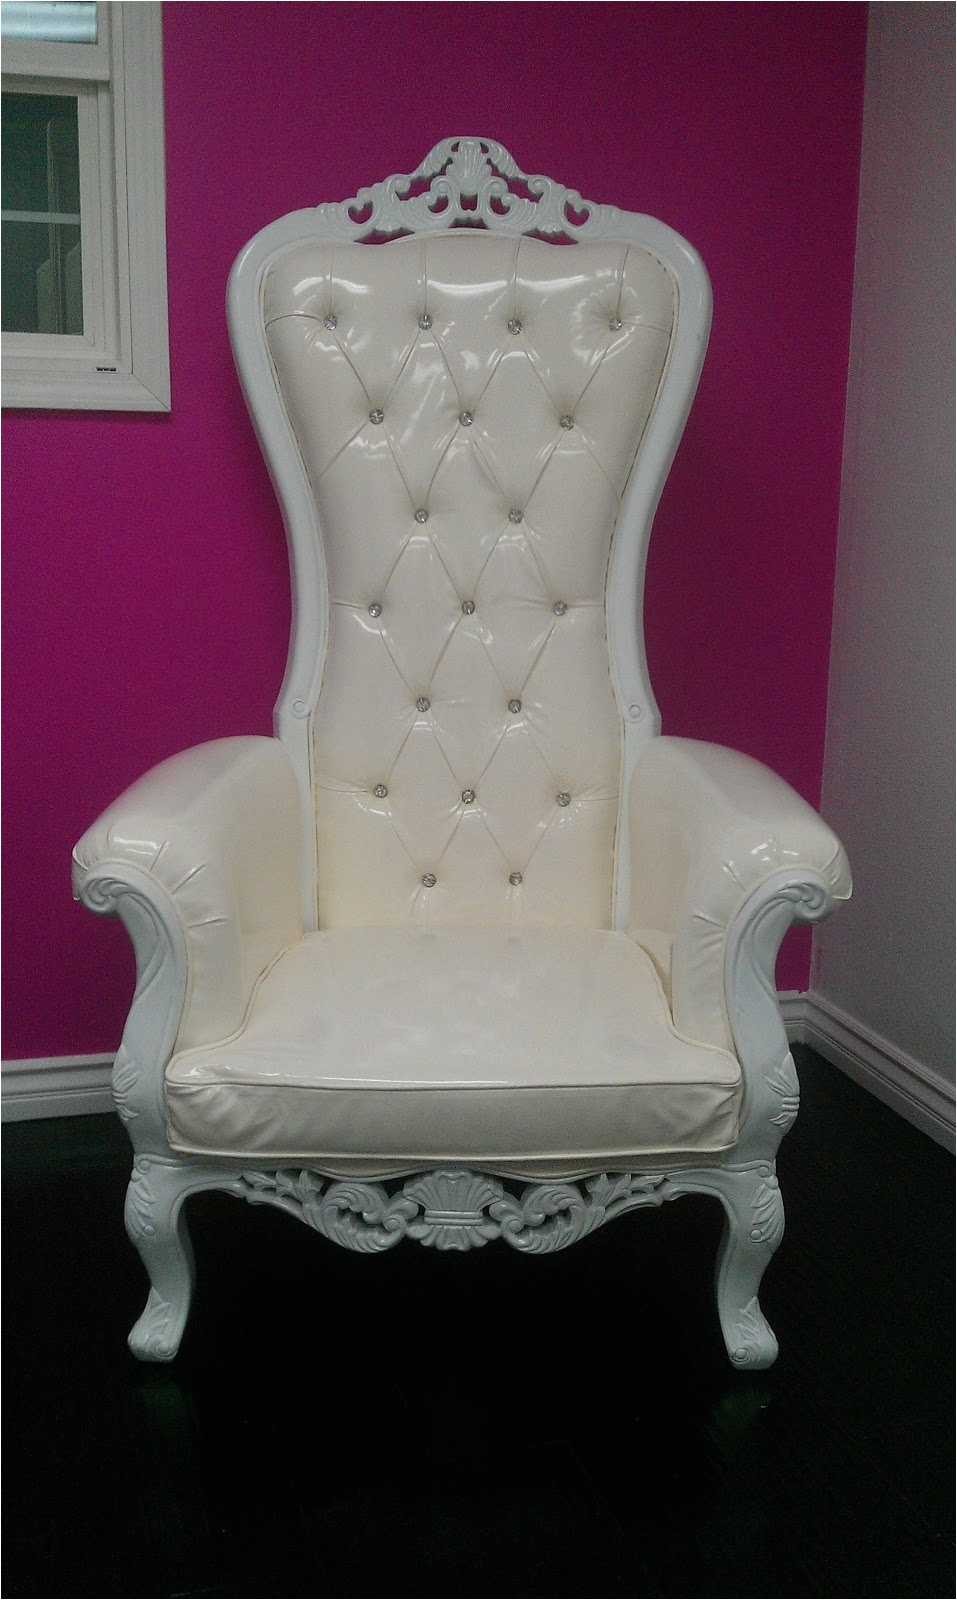 Royal Baby Shower Chairs for Sale Outstanding Shower Chair Cost ...